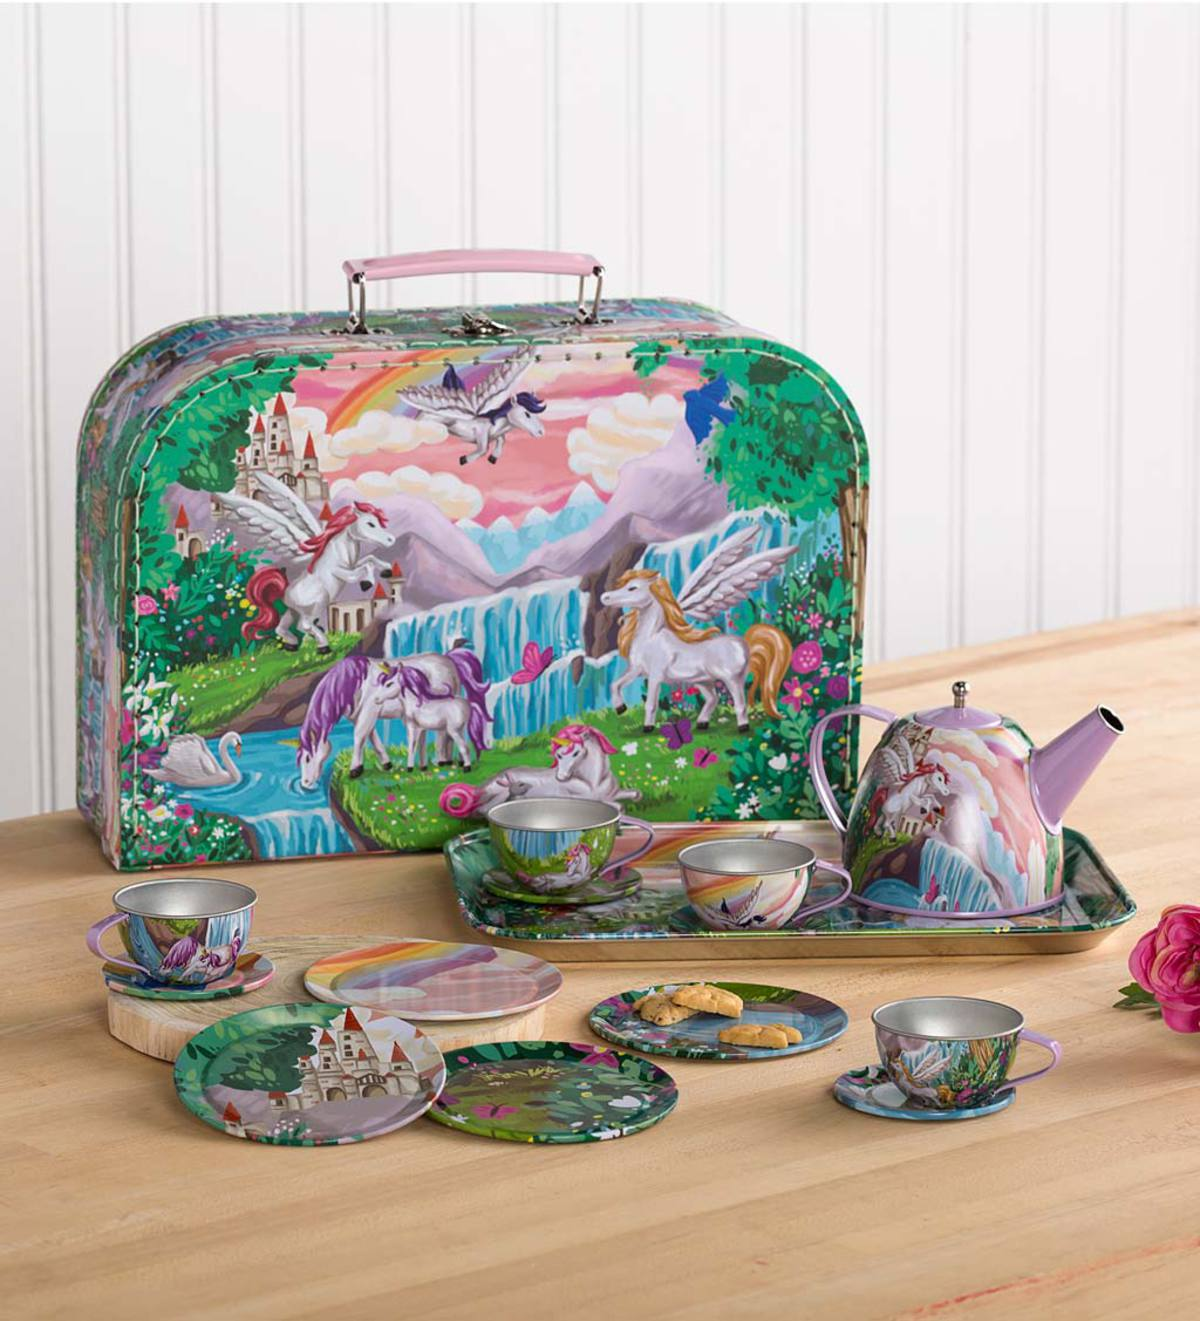 15-Piece Fantasy-Themed Decorative Tin Tea Set